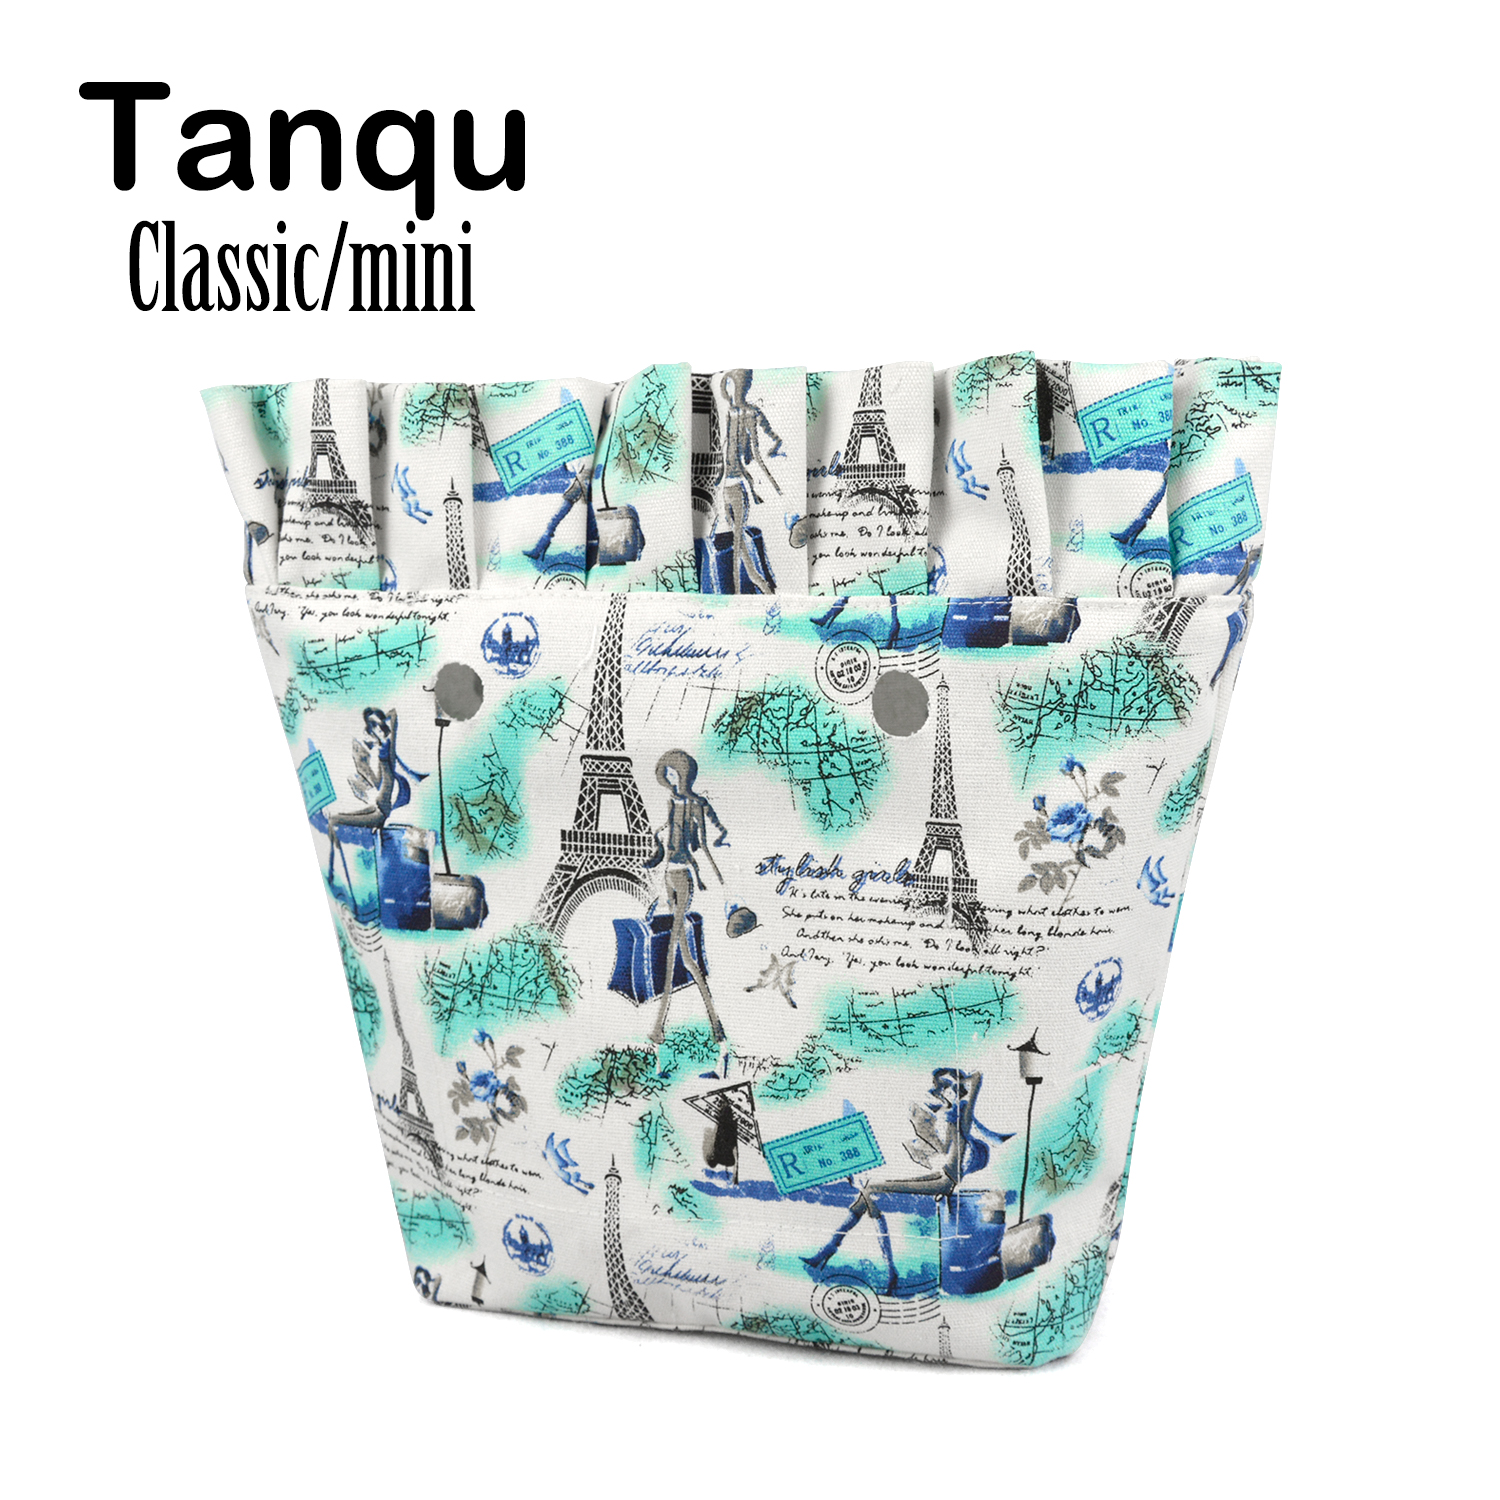 TANQU New Frill Pleat Ruffle Classic Mini Colorful Zip-up Inner Lining Insert for Big Mini Obag Canvas Inner Pocket for O Bag tanqu tela insert lining for o chic ochic colorful canvas inner pocket waterproof inner pocket for obag